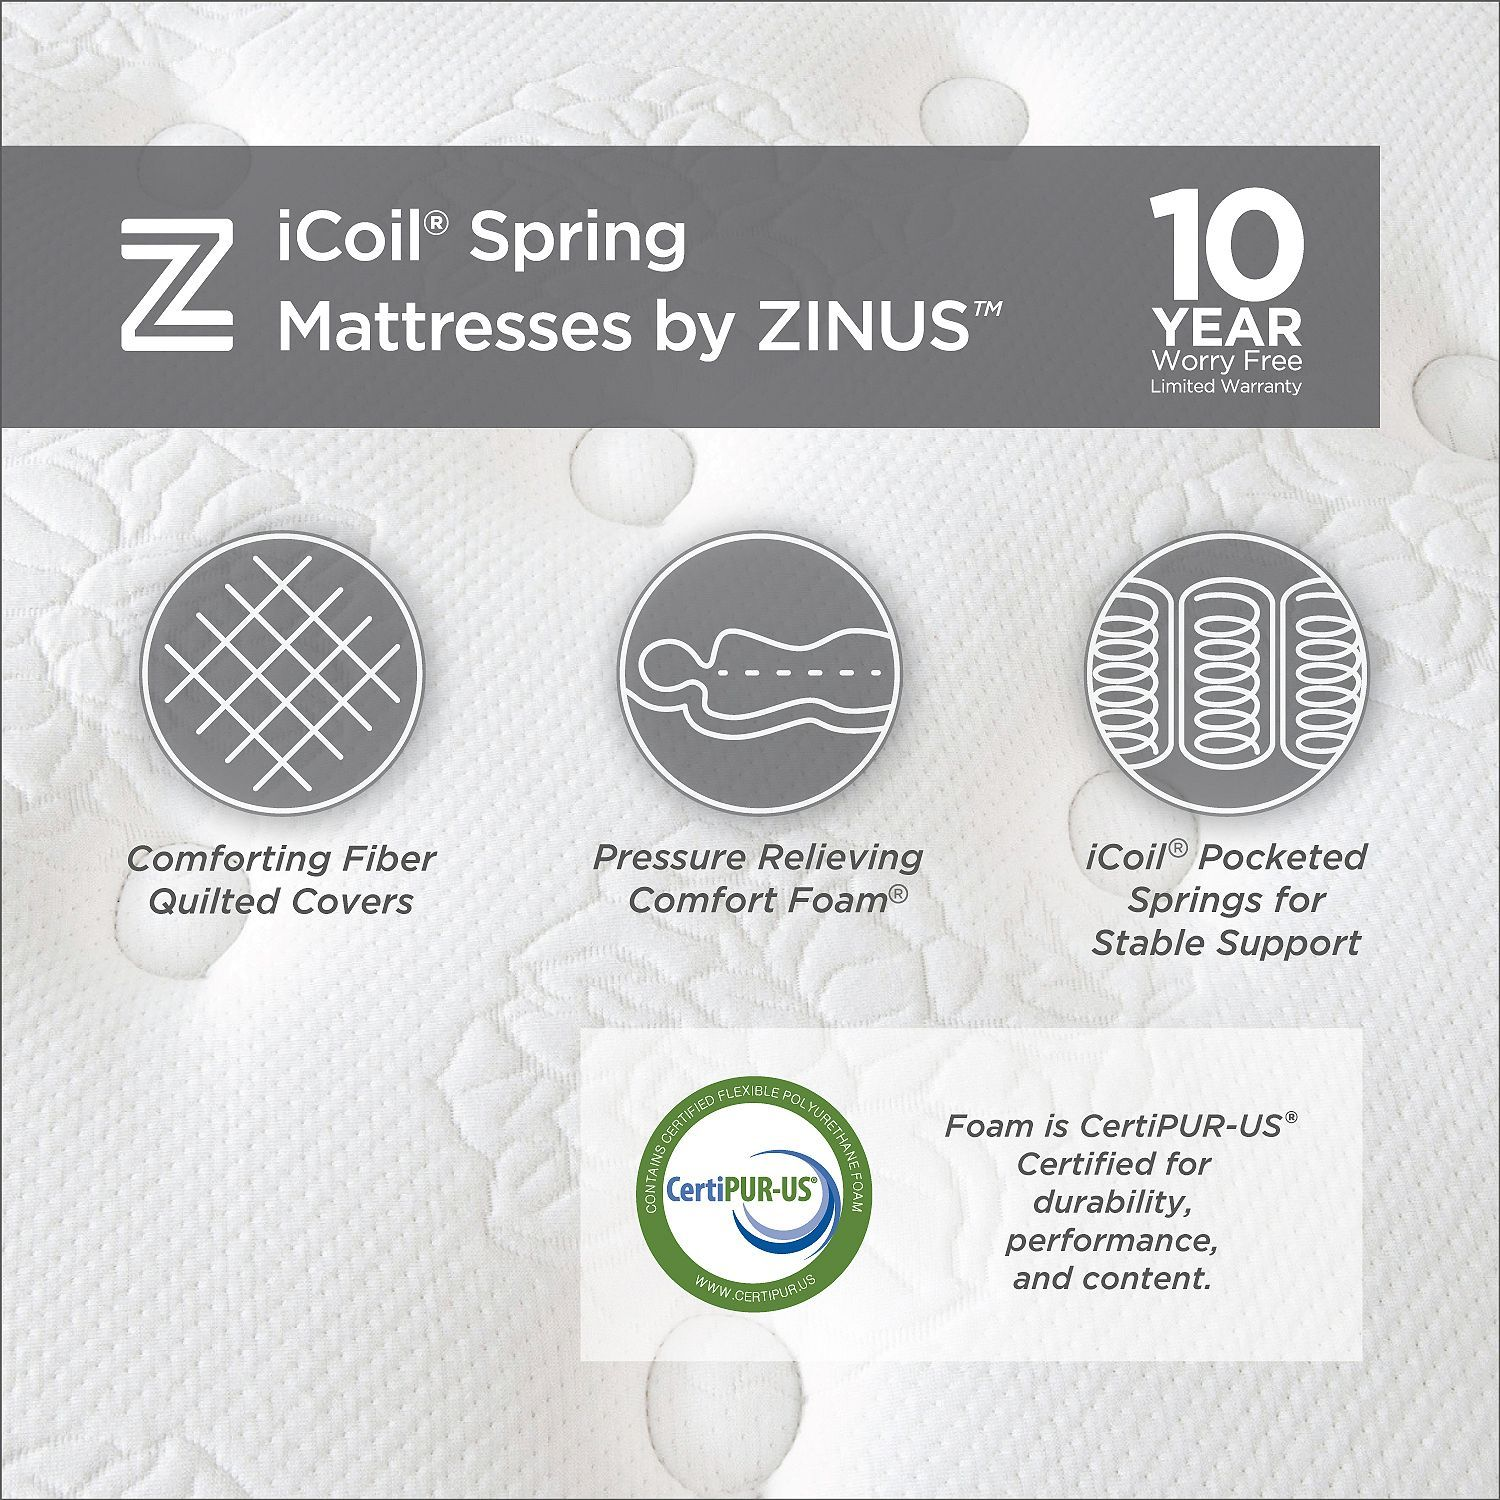 Zinus Night Therapy Icoil 8 Spring Twin Xl Mattress Mattress Bed Frame Sets Bed Frame Mattress